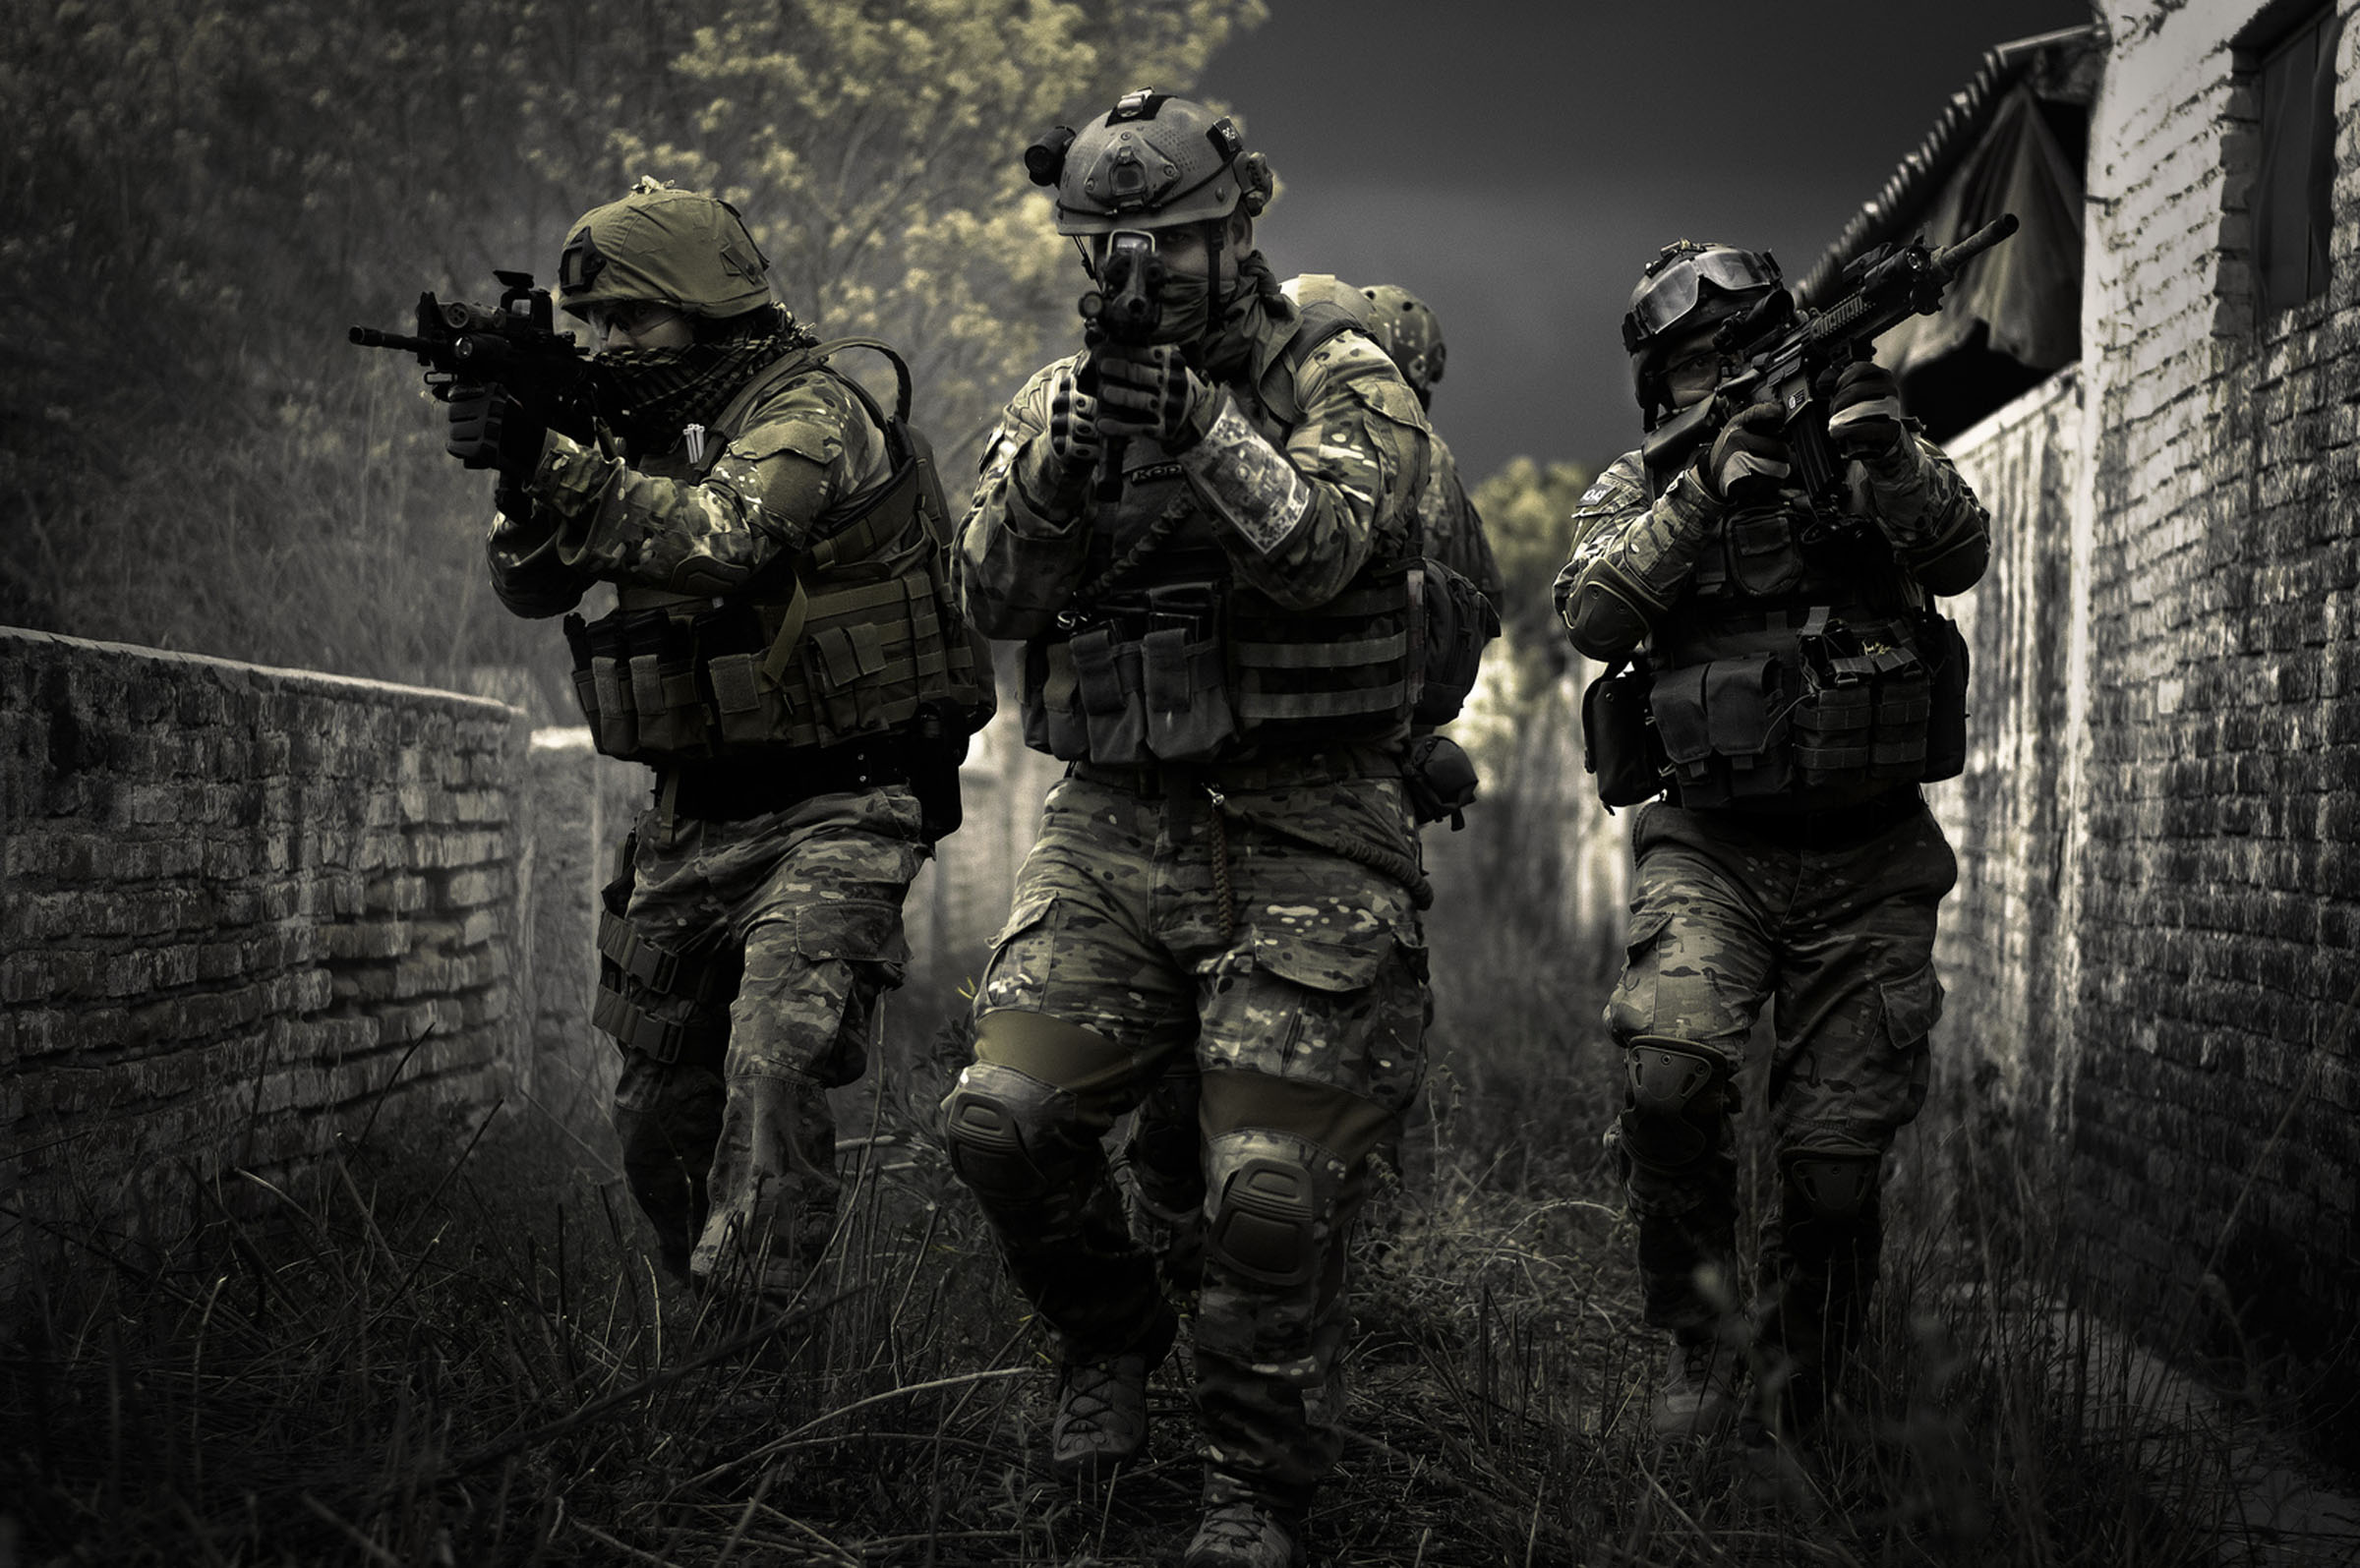 Full HD Quality Airsoft Images for 2400x1595